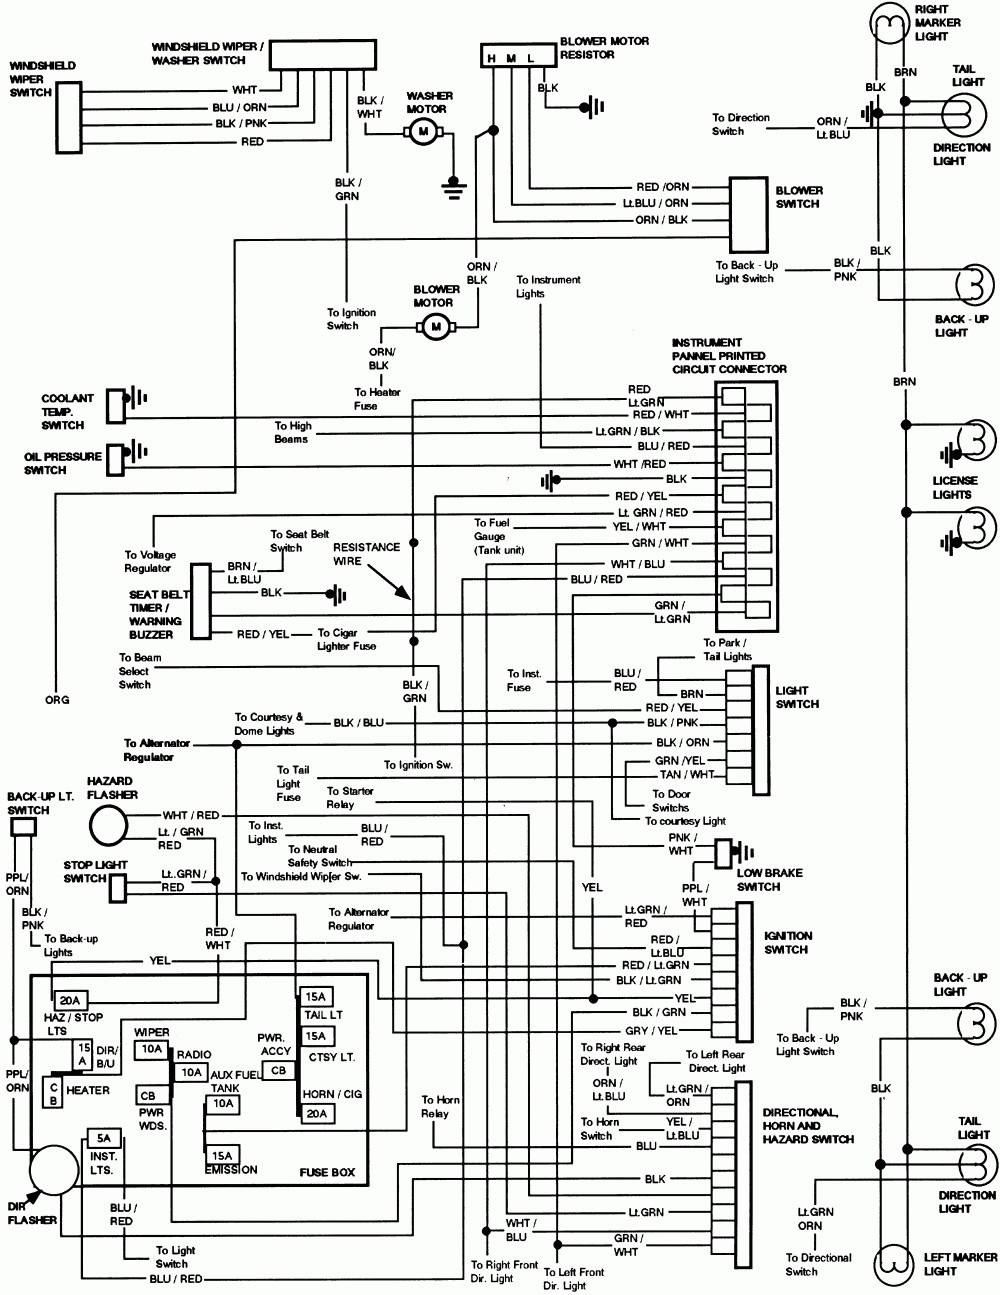 medium resolution of 1996 f700 wiring diagram wiring diagram schematics 1987 dodge ram 150 wiring diagram 1987 ford e350